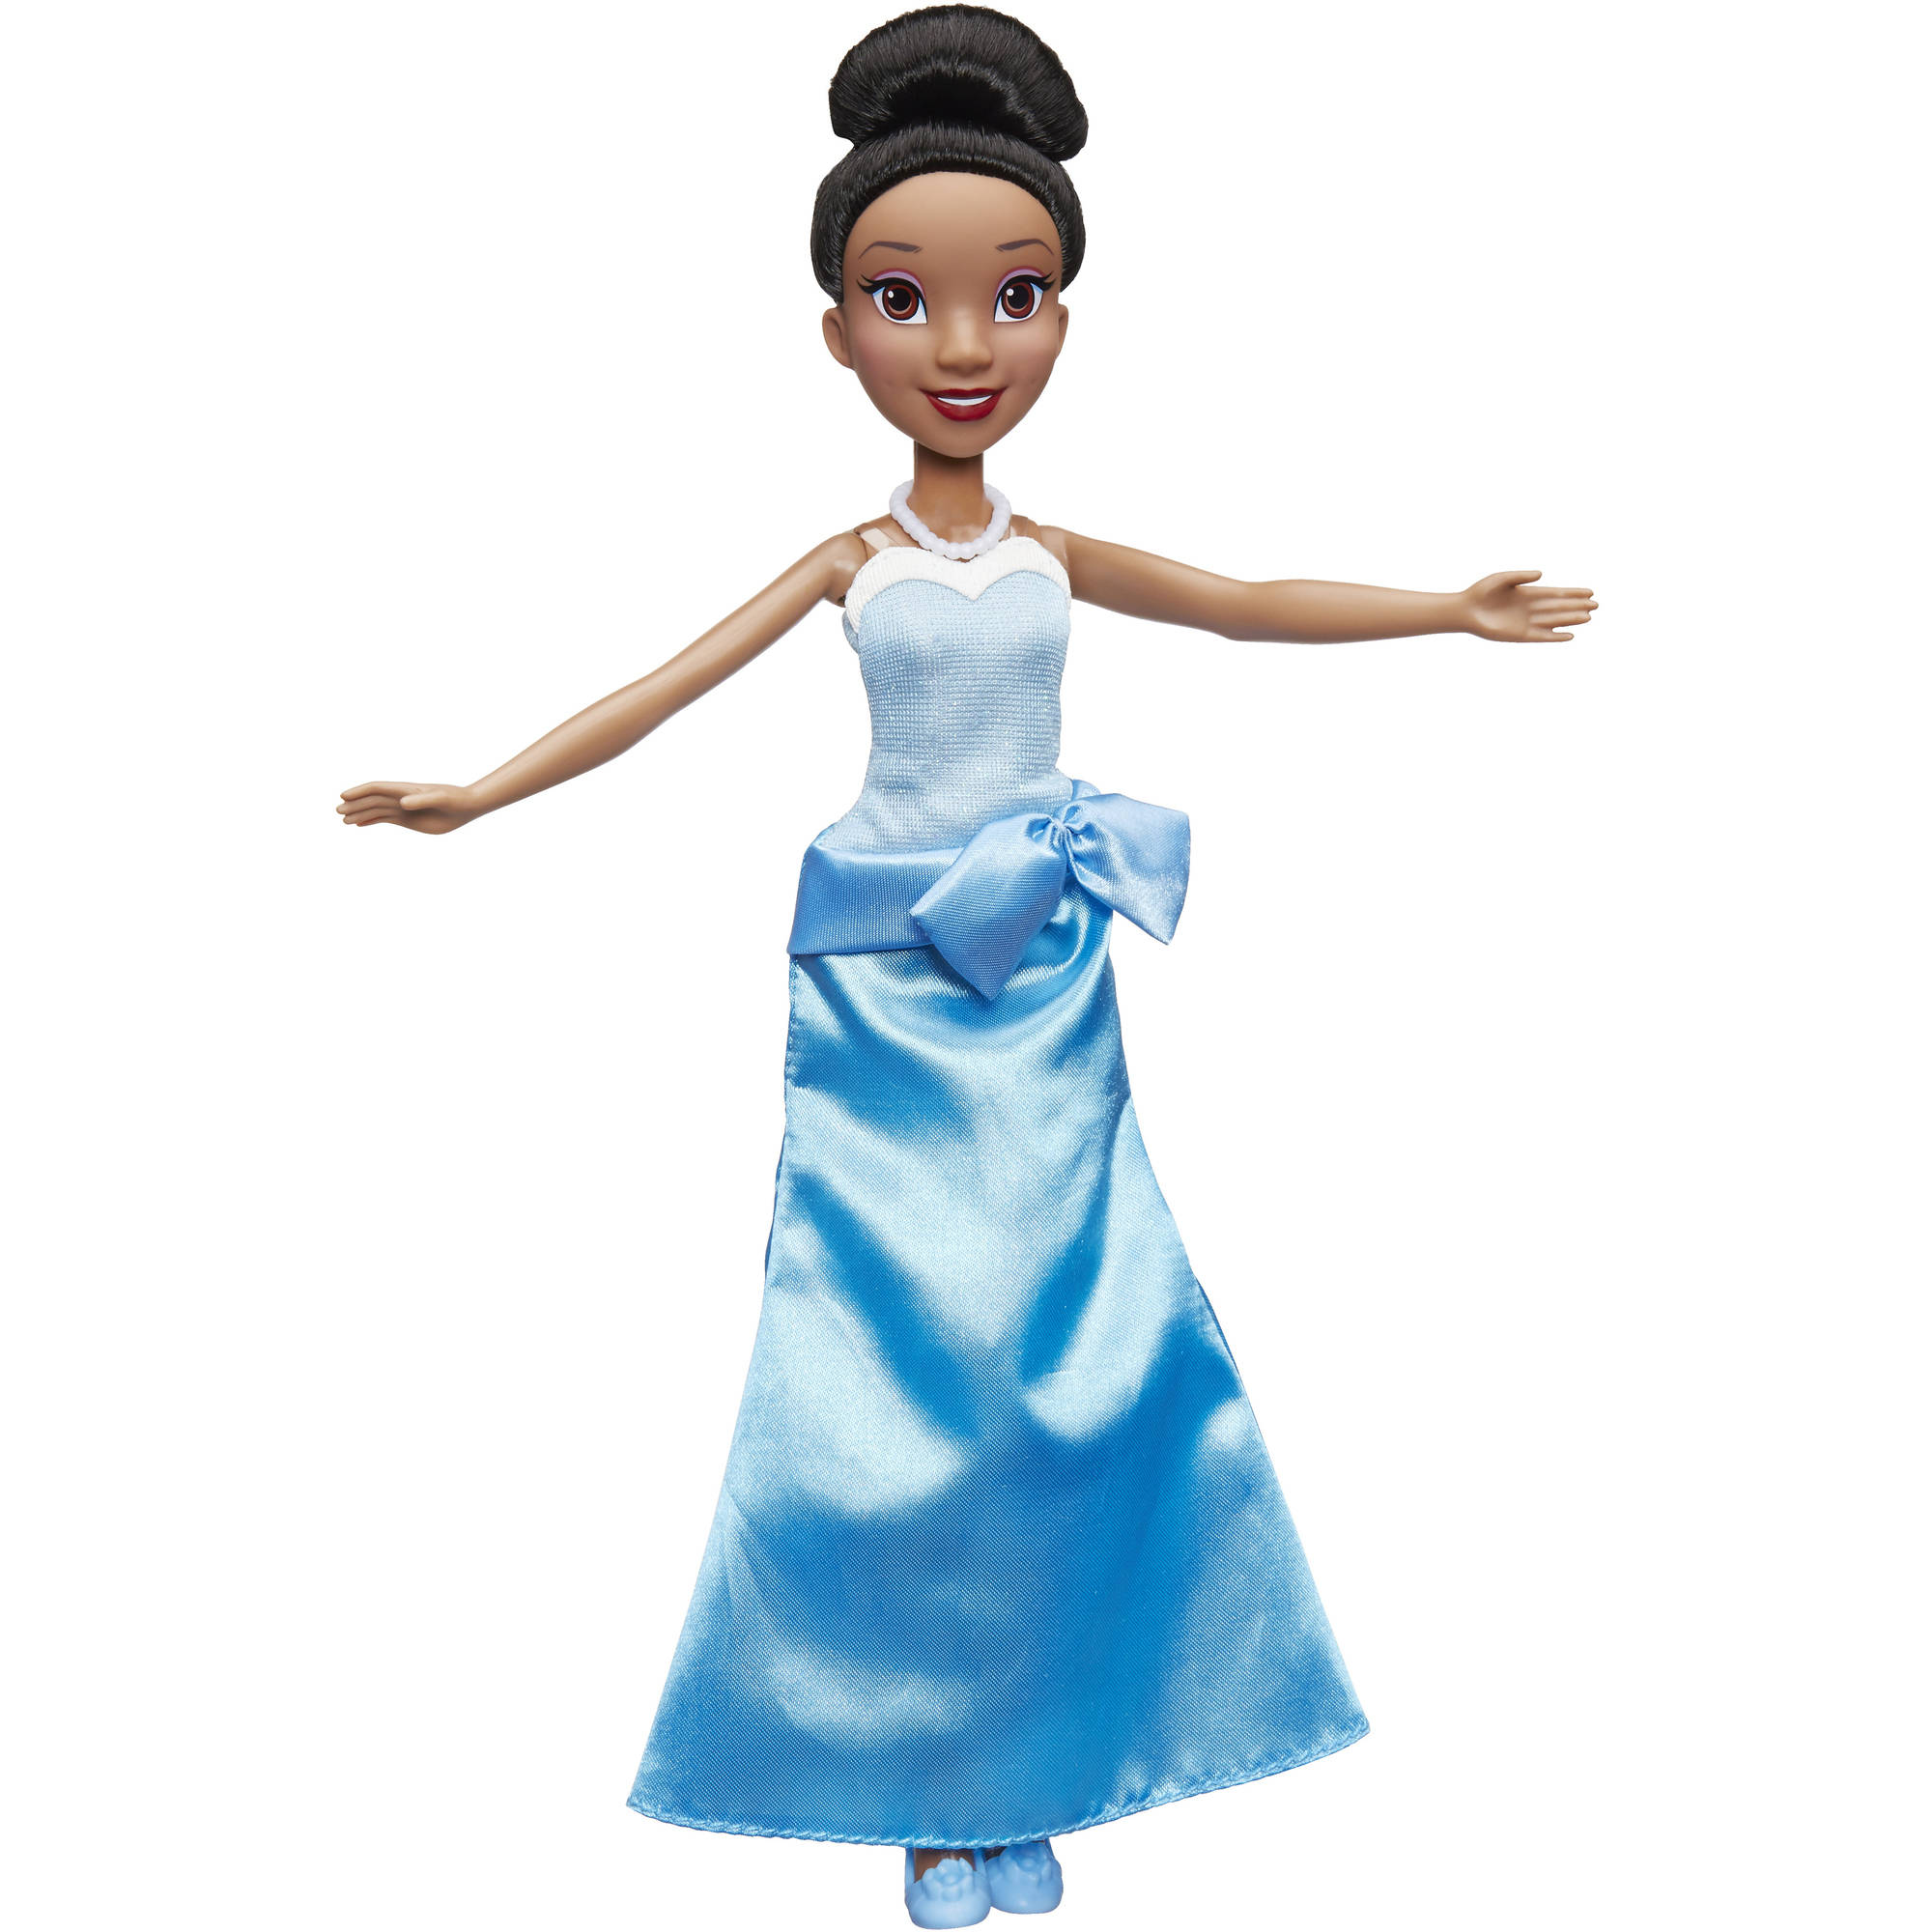 Disney Princess Tiana Doll in Blue Ball Gown